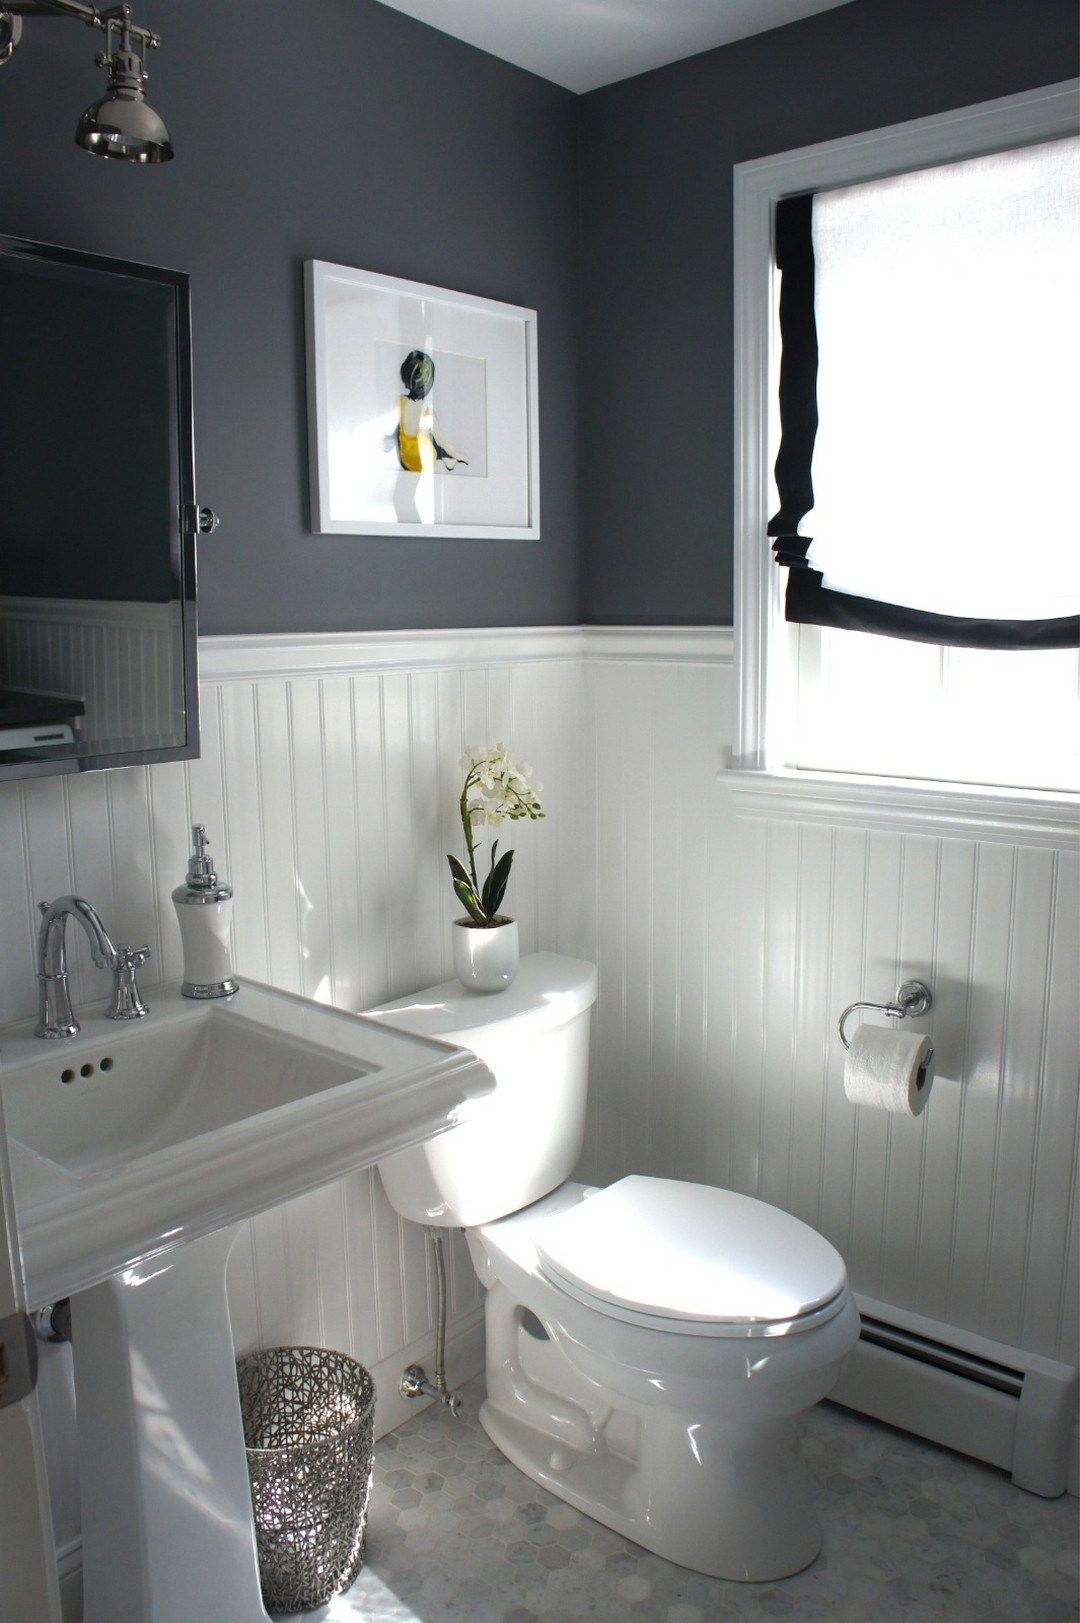 99 small master bathroom makeover ideas on a budget 48 for Small bathroom makeover ideas